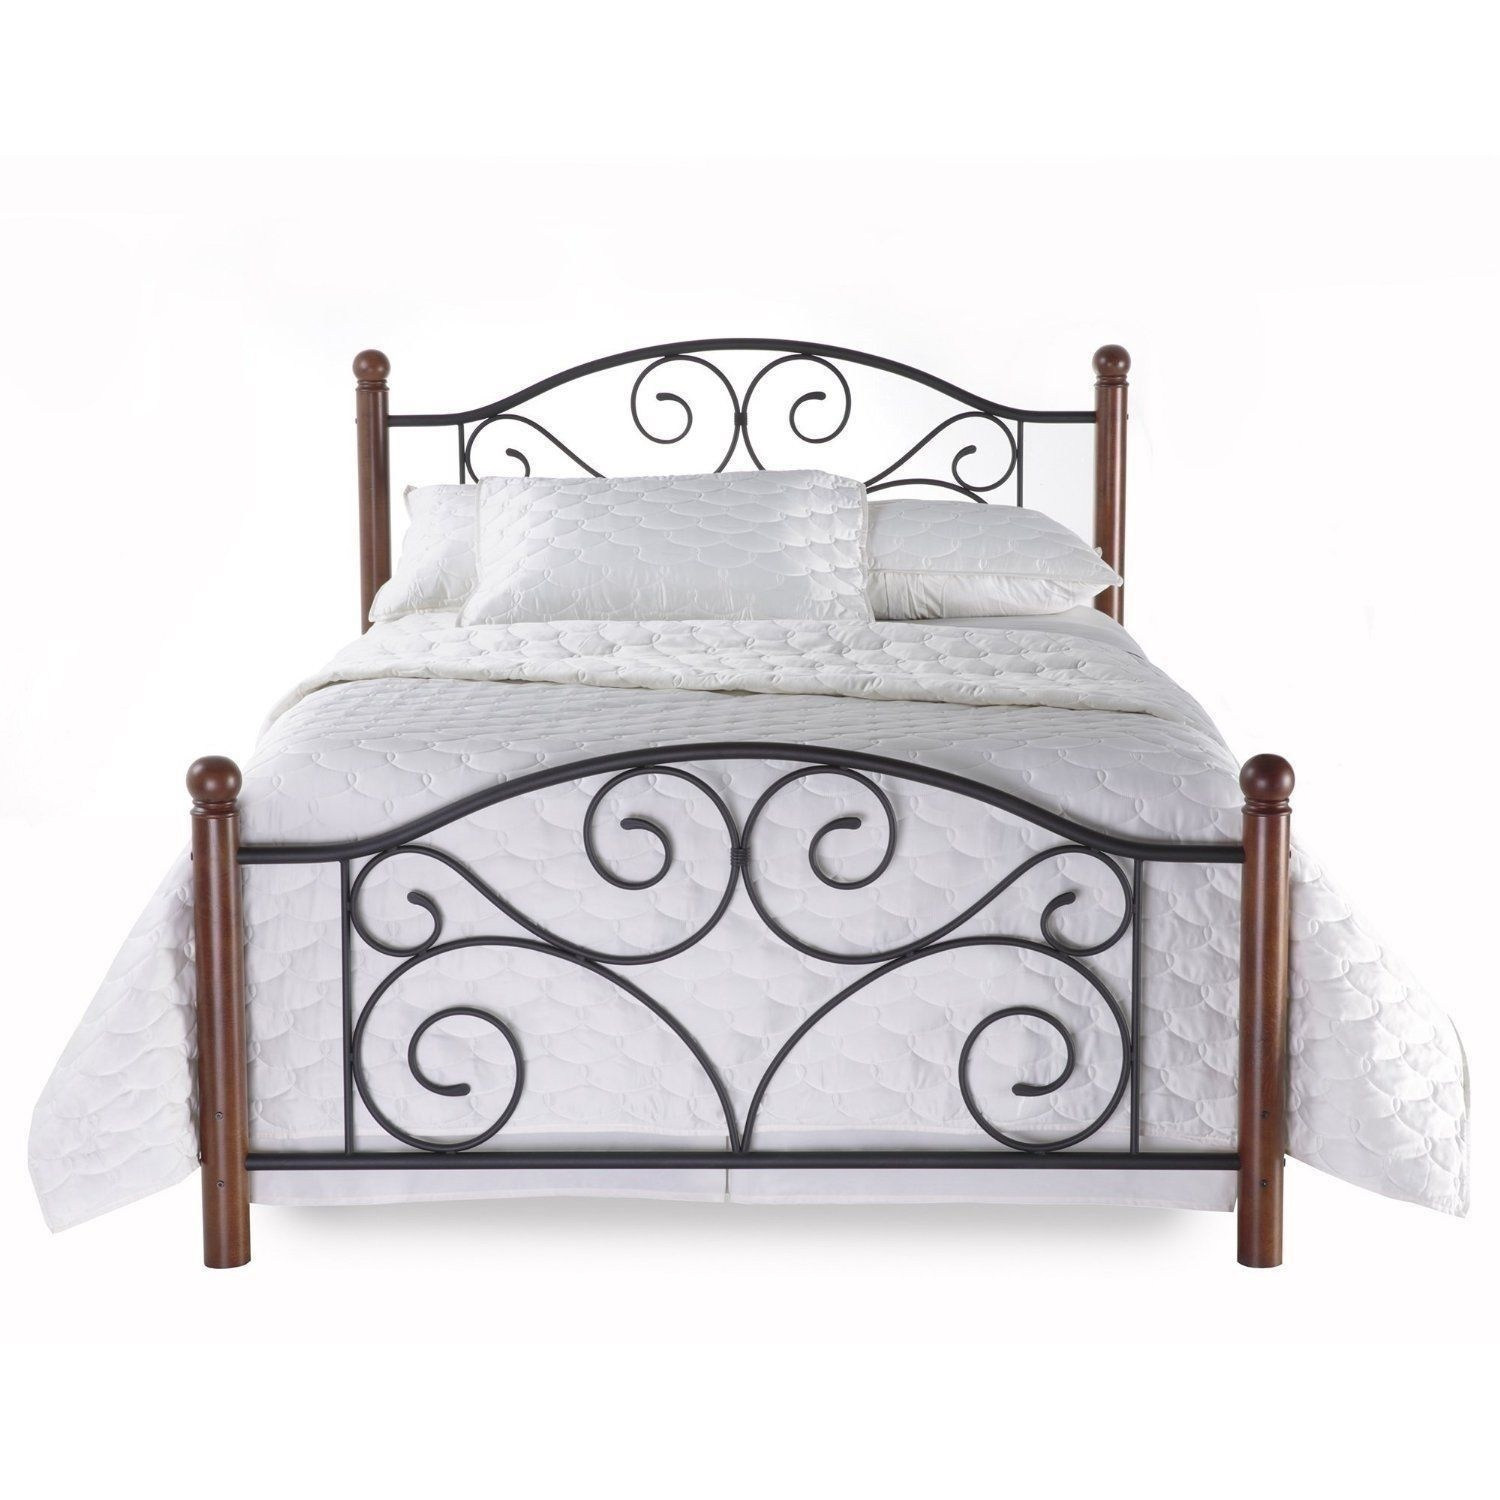 New Full Queen King Size Metal Wood Mattress Bed Frame Headboard Footboard Brown Ebay